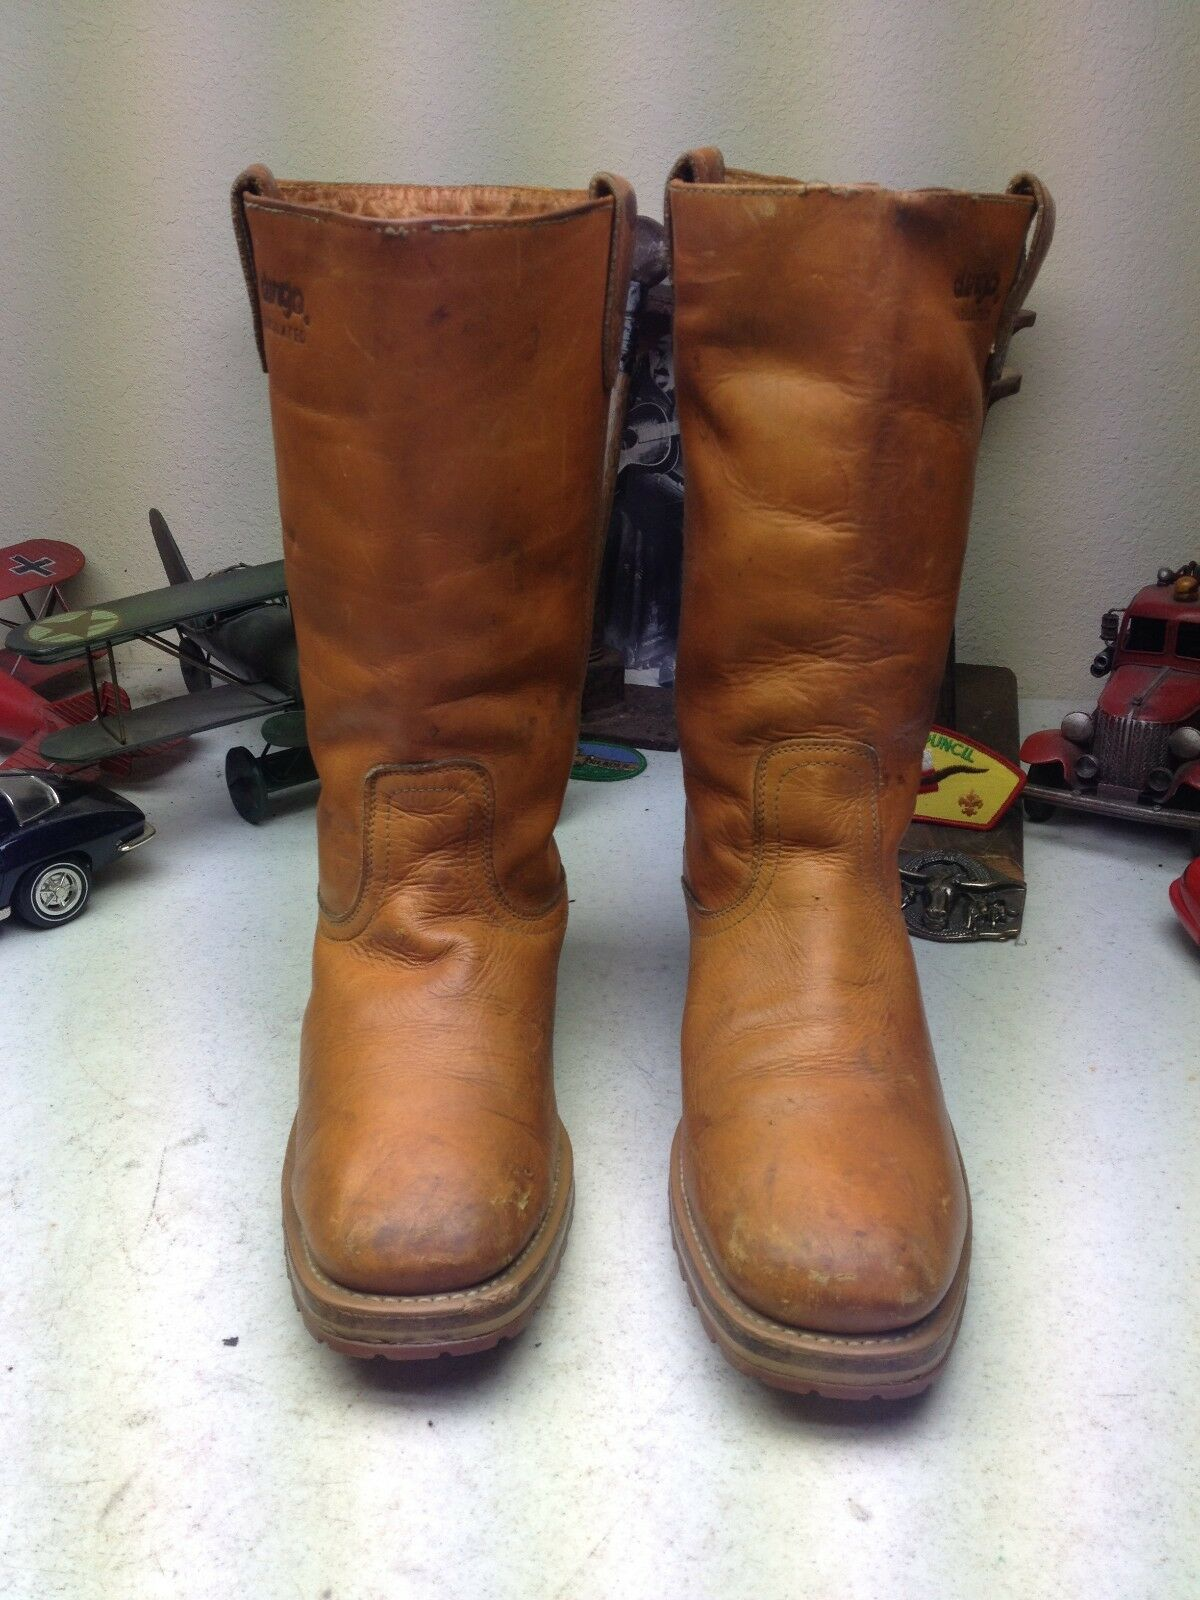 DISTRESSED A ACME DINGO VINTAGE  A DISTRESSED SQUARE TOE INSULATED WESTERN CAMP  BOOTS 8.5D 7be903